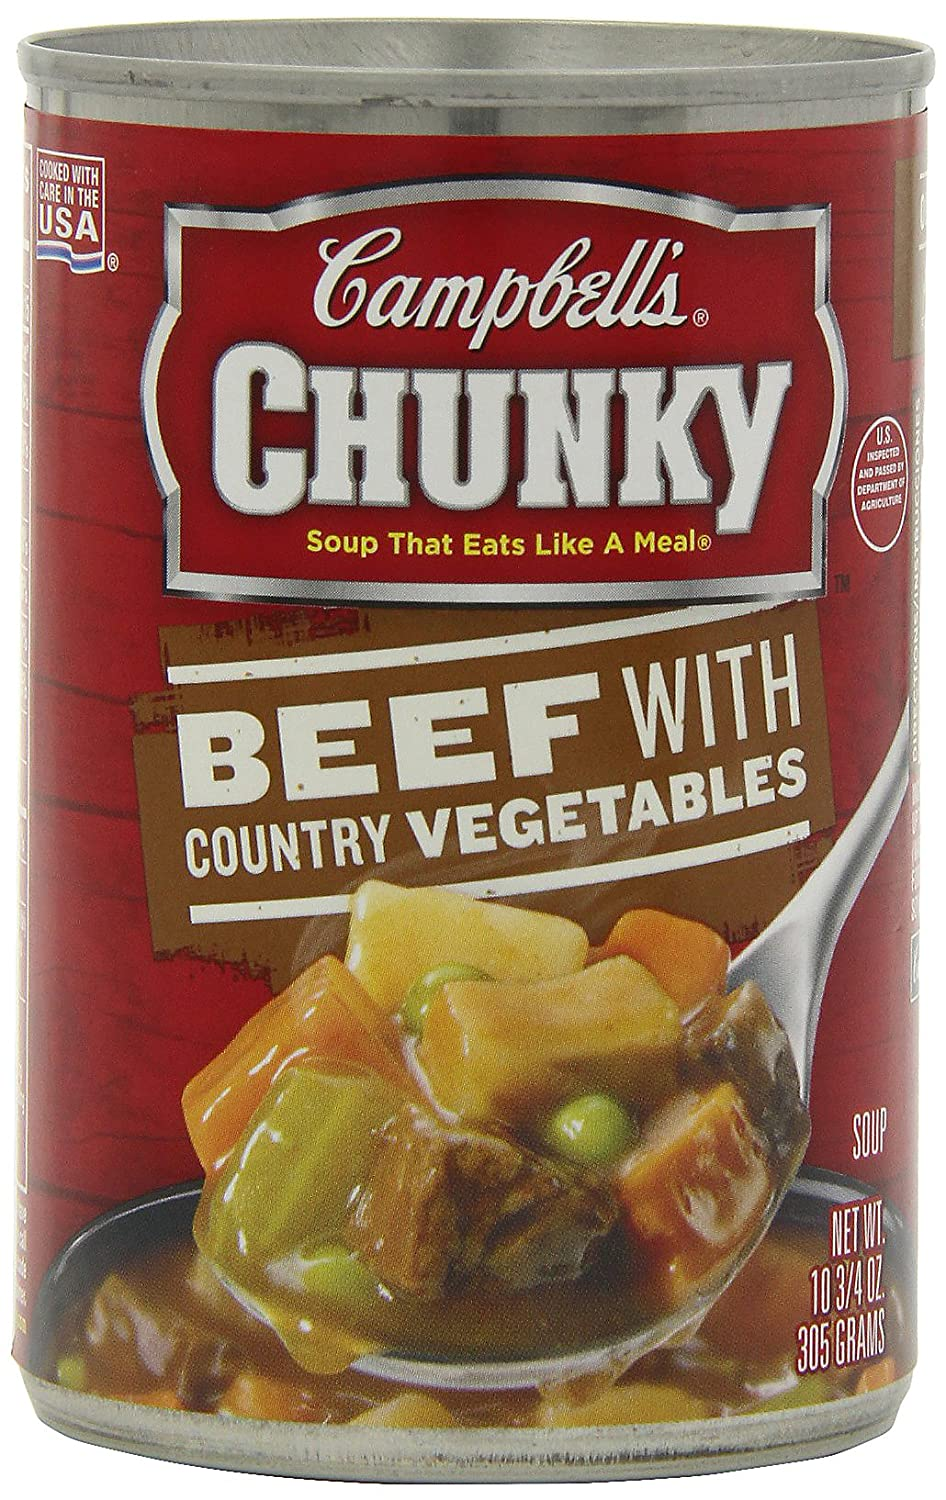 Campbells Chunky Beef with Country Vegetables Soup, 10.75 Ounce Cans (Pack of 12)